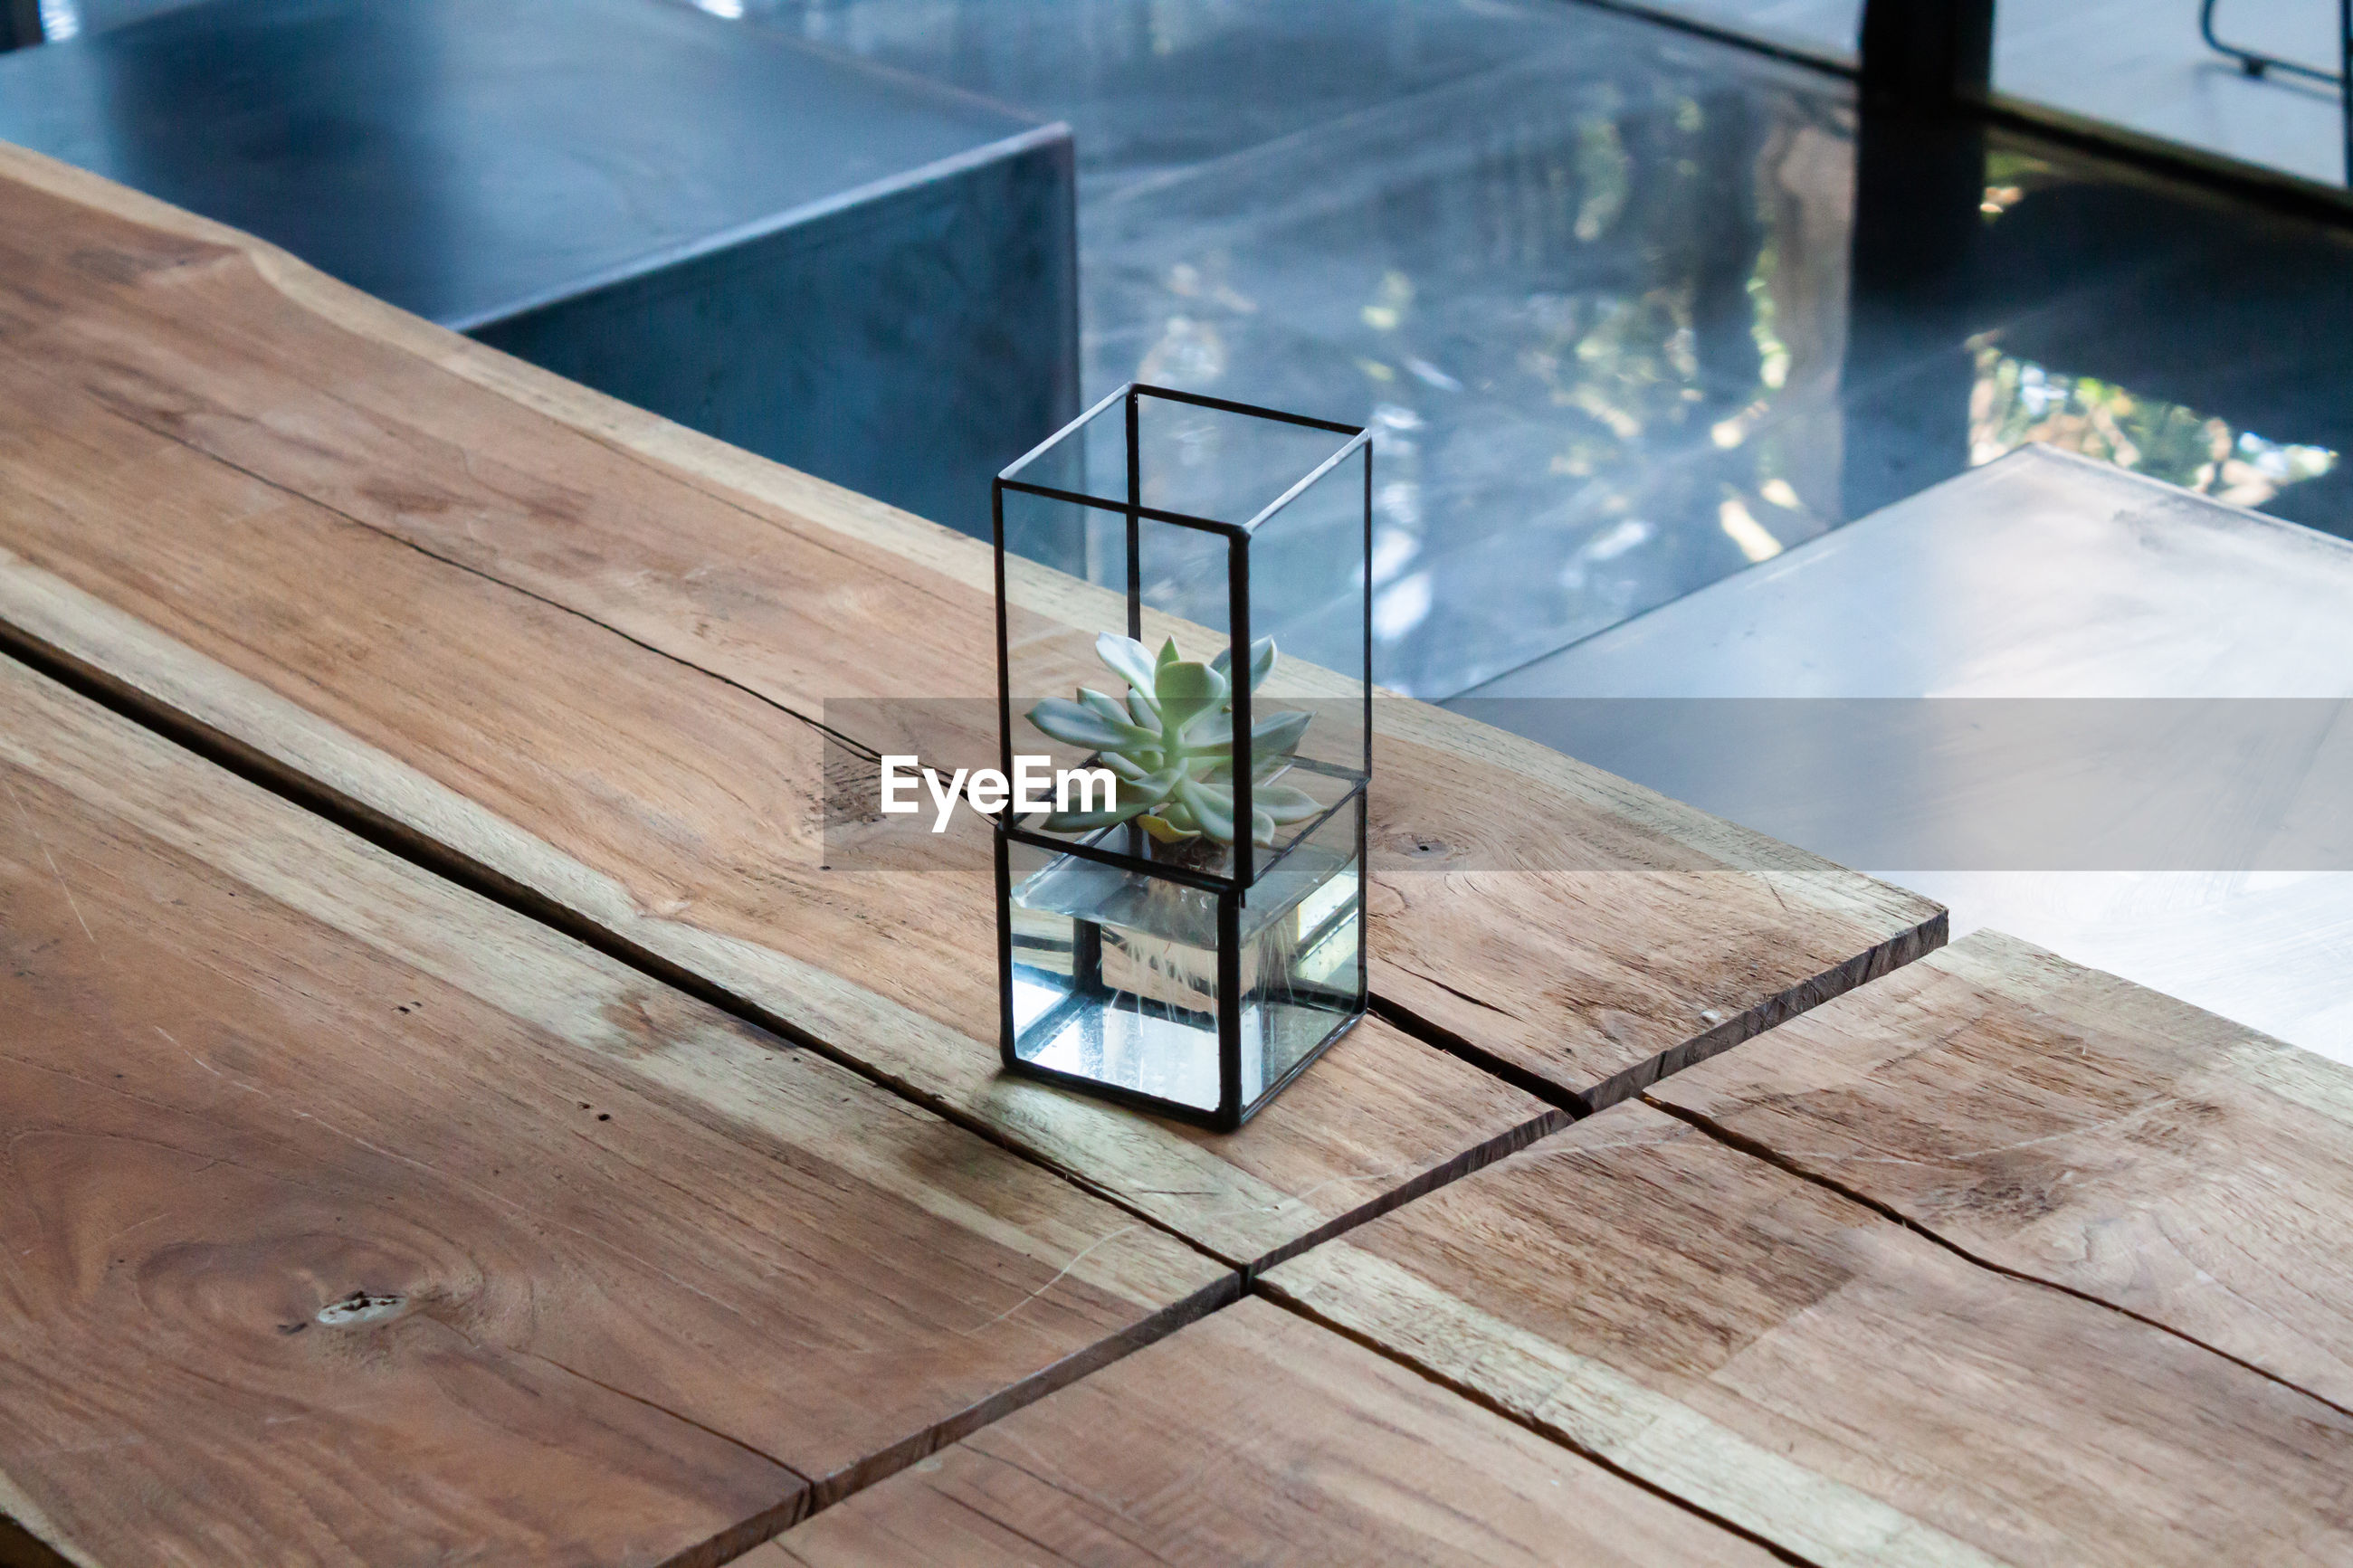 High angle view of plant in glass on table